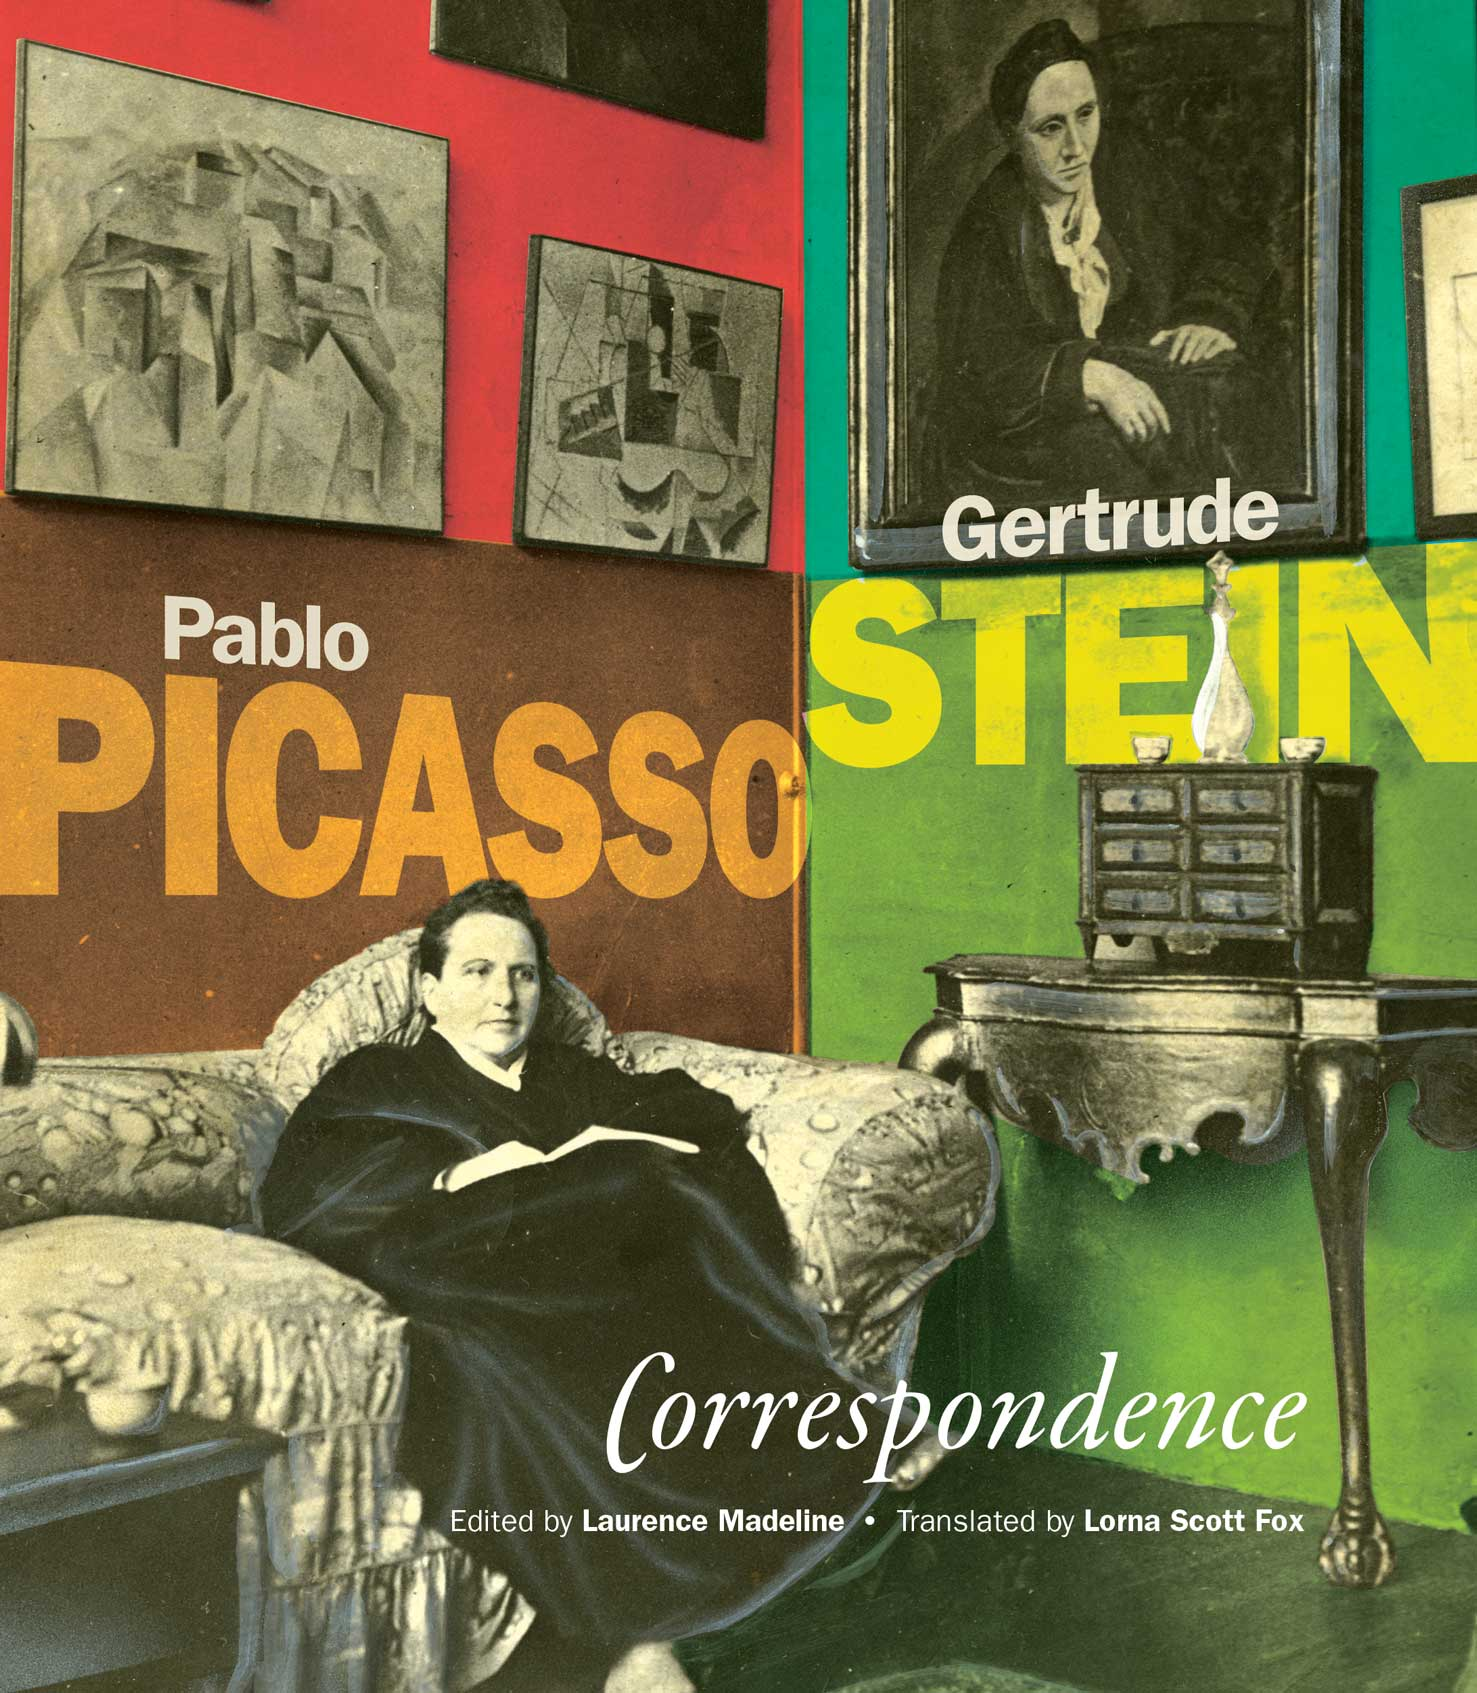 Pablo Picasso and Gertrude Stein: Correspondence |  Seagull Books